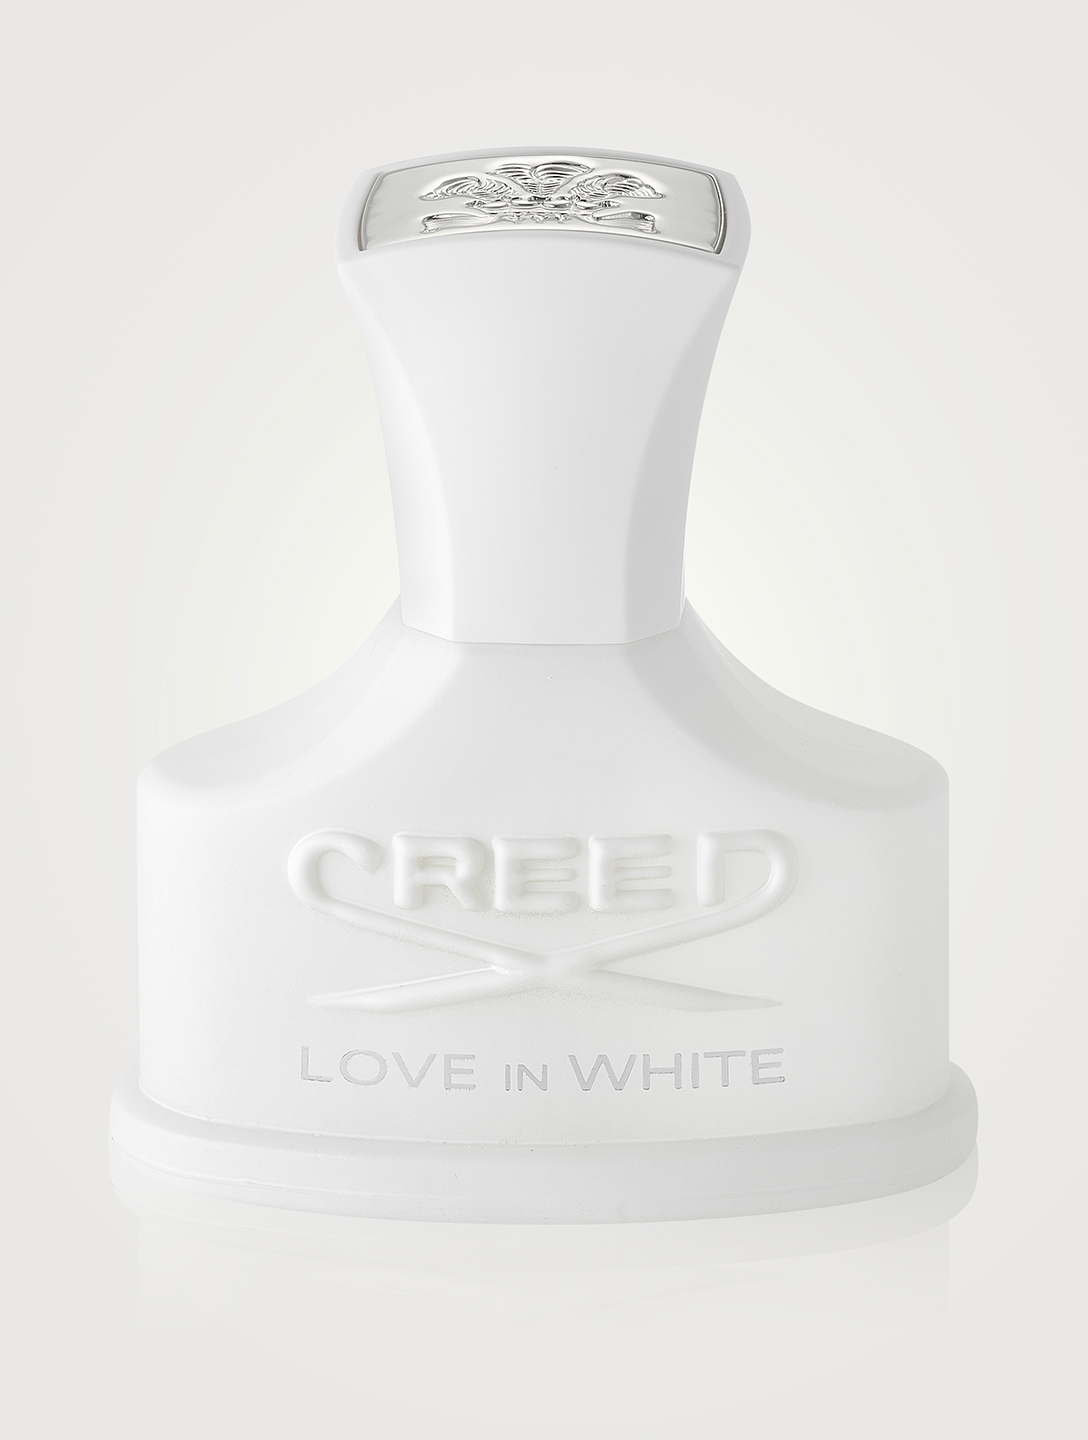 CREED Love In White Eau De Parfum Designers